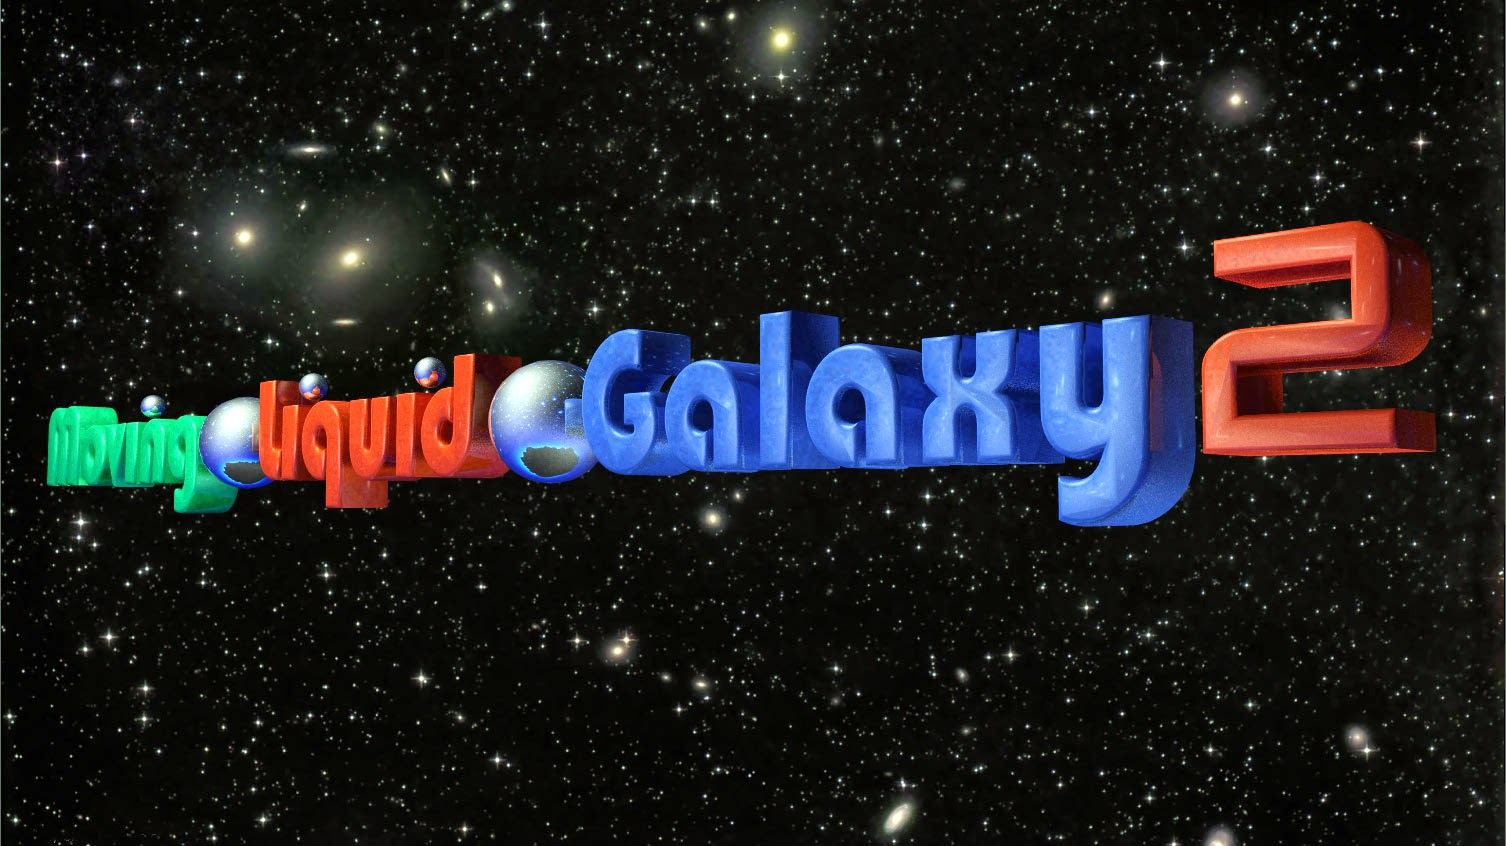 Moving Liquid Galaxy 2 is coming  #LiquidGalaxy #Google